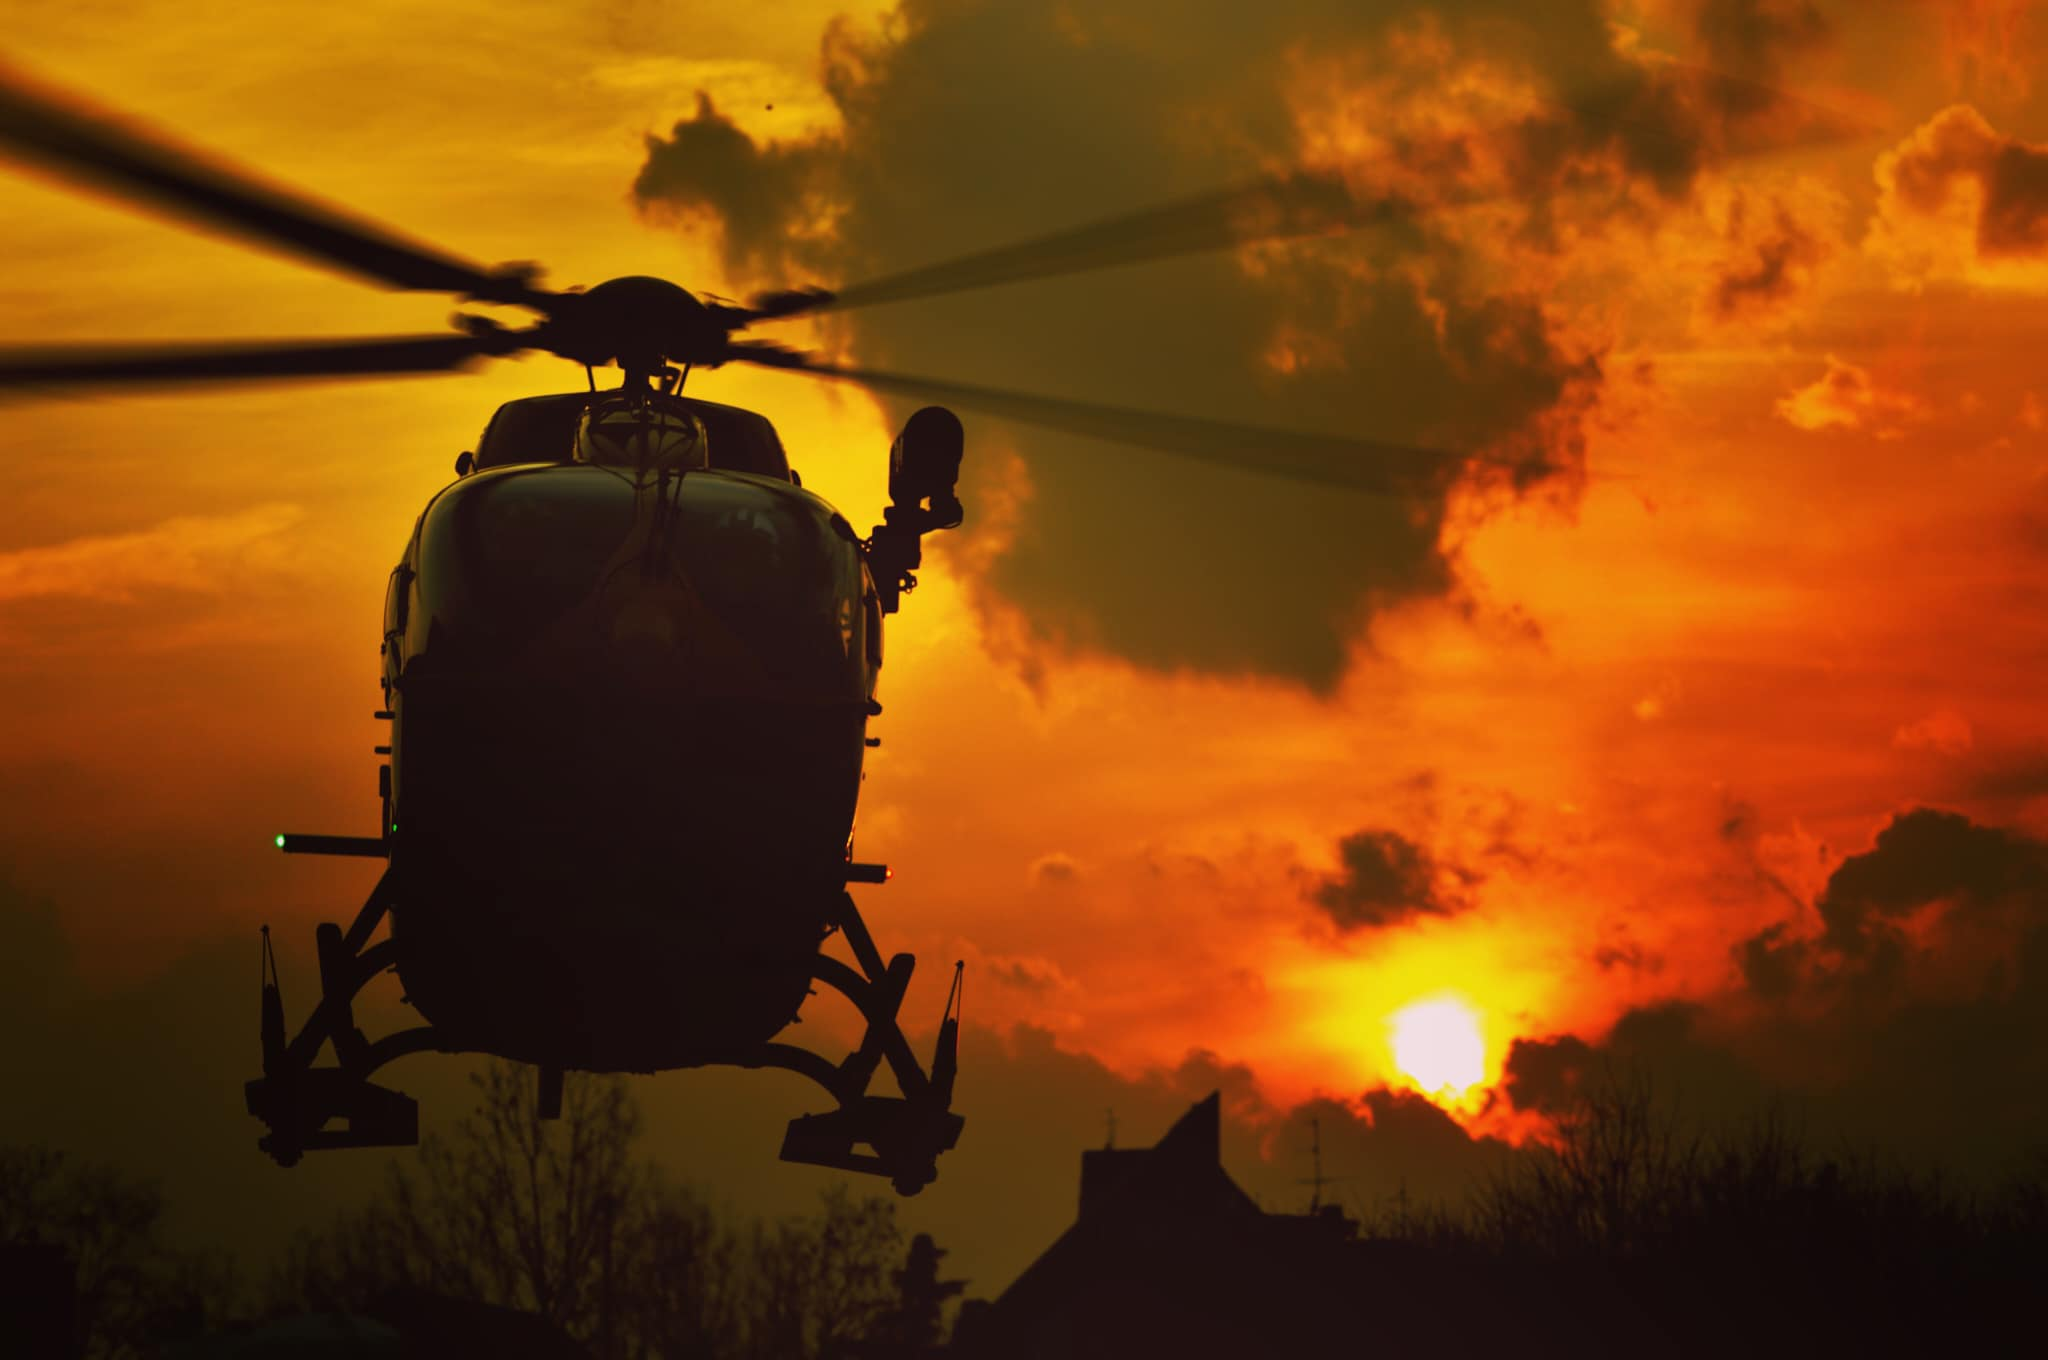 An Airbus H145 lands at sunset. Photo submitted by Alberto Betto